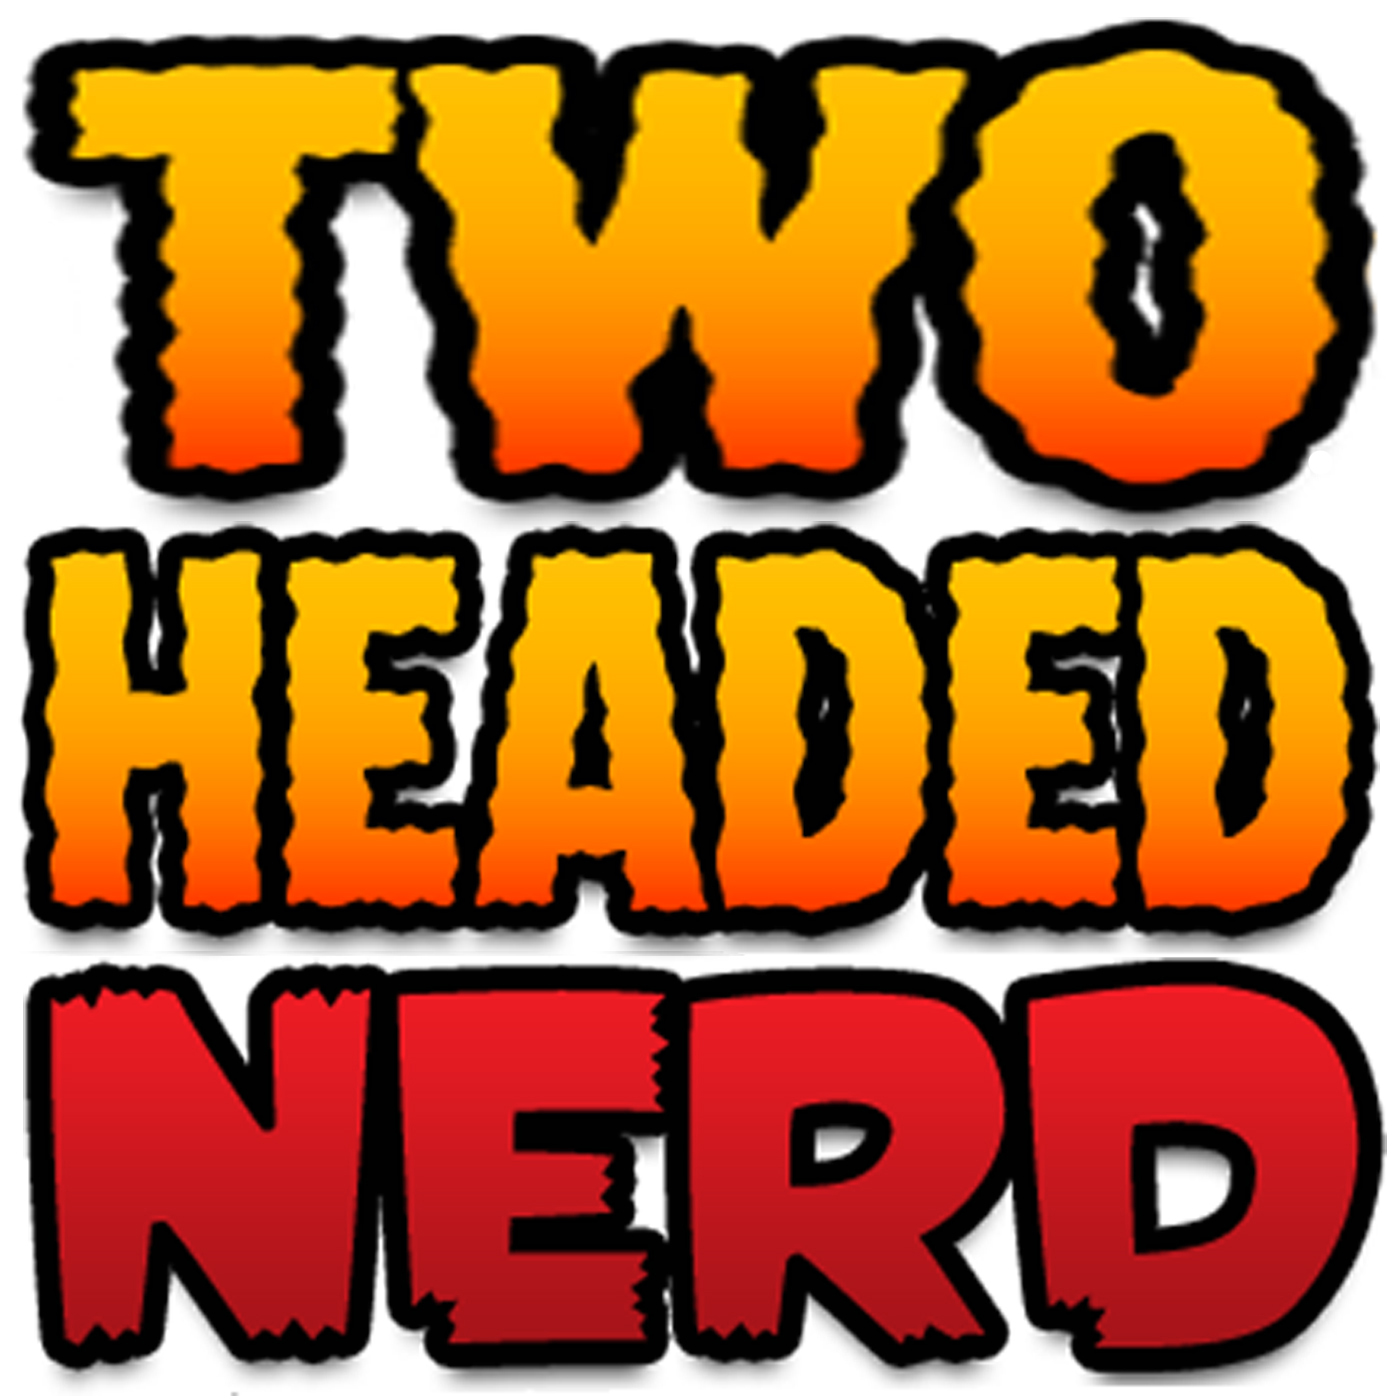 The Two-Headed Nerd Comic Book Podcast